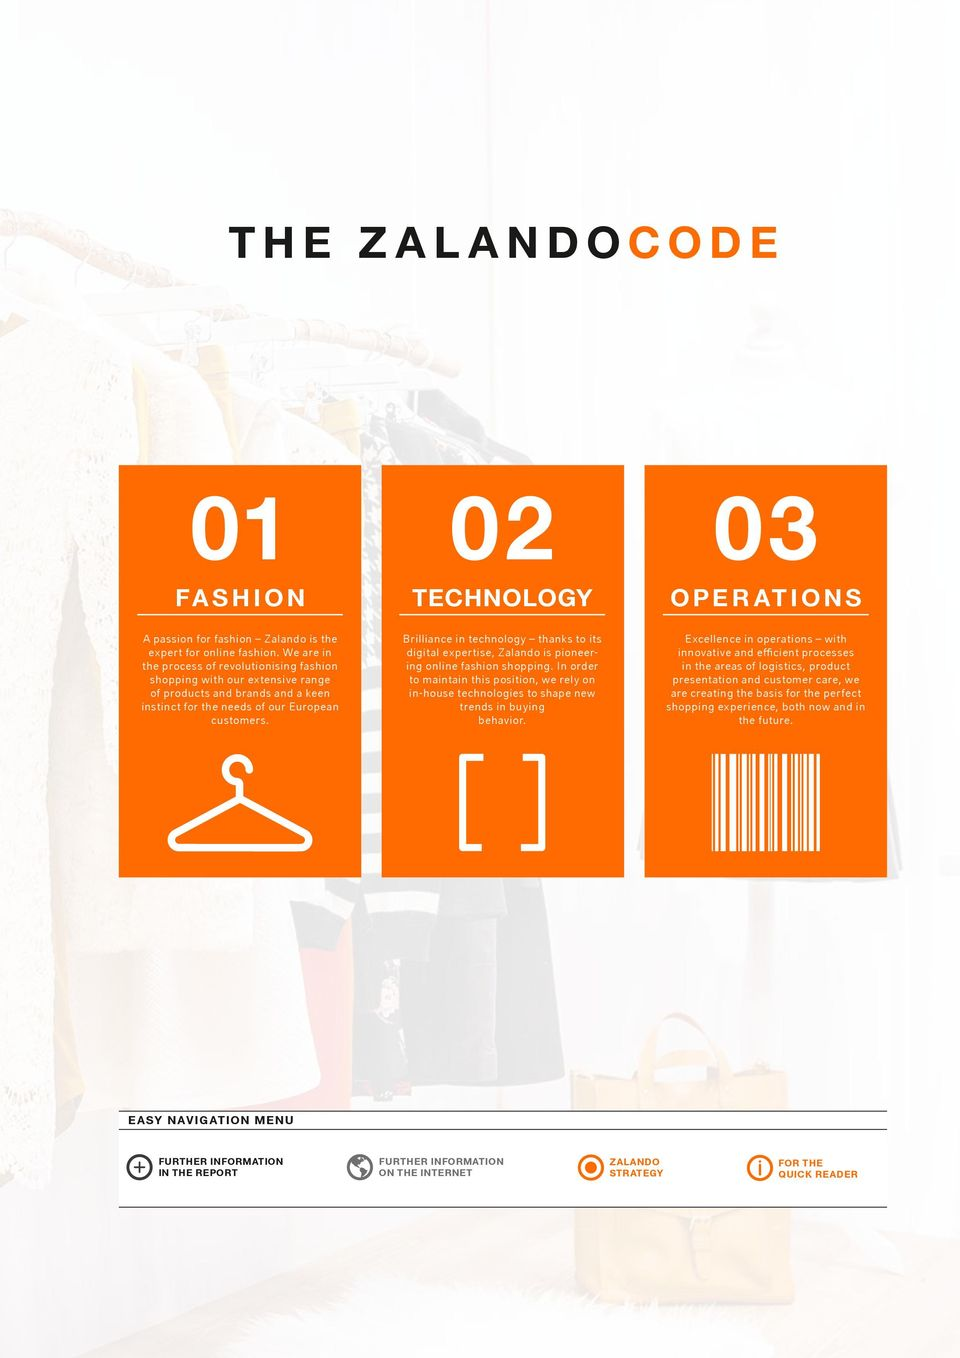 02 TECHNOLOGY Brilliance in technology thanks to its digital expertise, Zalando is pioneering online fashion shopping.